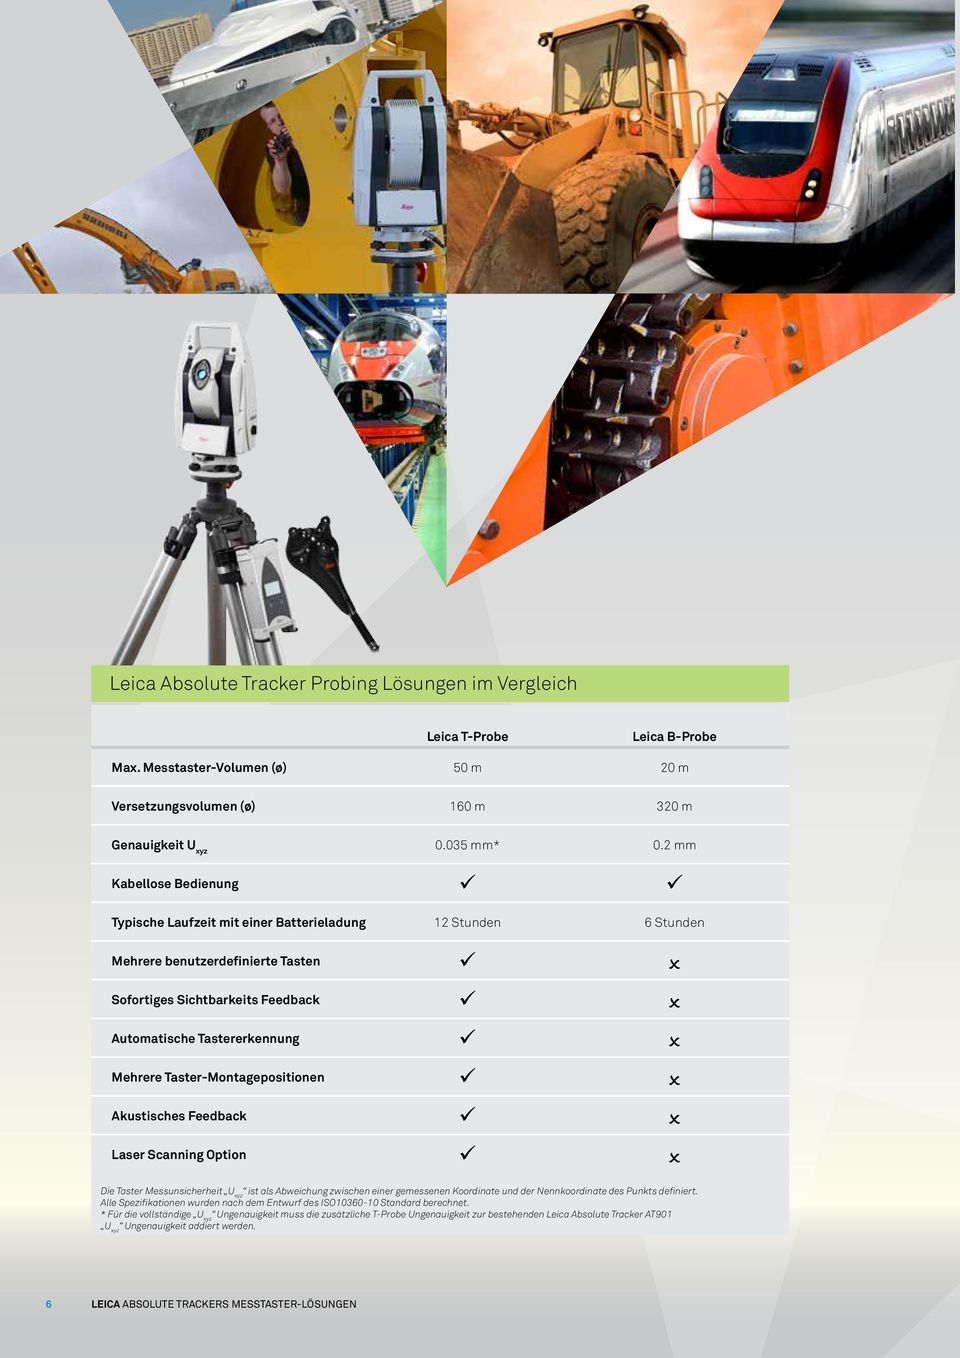 Taster-Montagepositionen Akustisches Feedback Laser Scanning Option Die Taster Messunsicherheit U xyz ist als Abweichung zwischen einer gemessenen Koordinate und der Nennkoordinate des Punkts